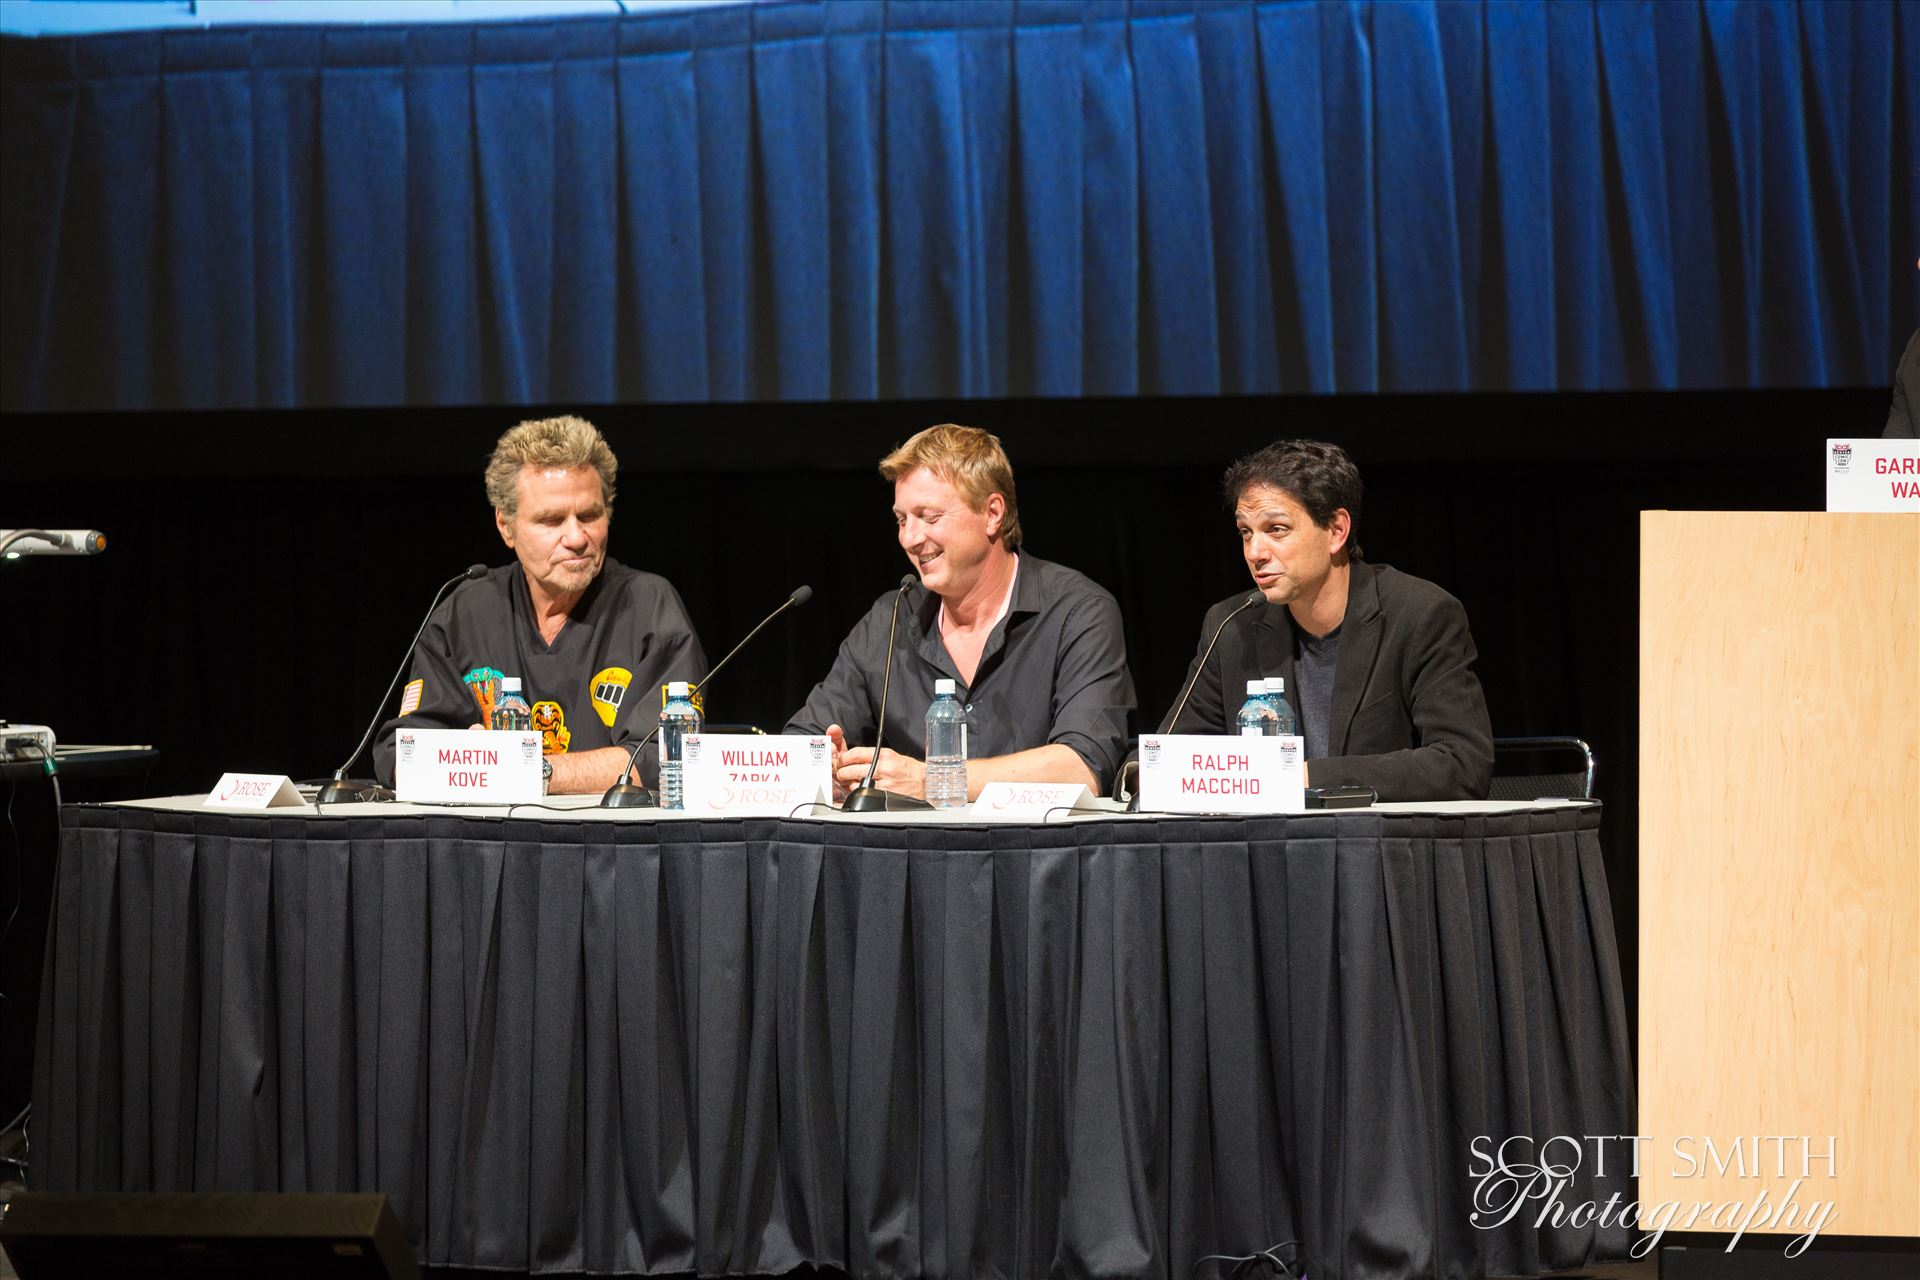 Denver Comic Con 2016 41 - Denver Comic Con 2016 at the Colorado Convention Center. Garrett Wang, Ralph Macchio, Martin Kove and William Zabka. by D Scott Smith